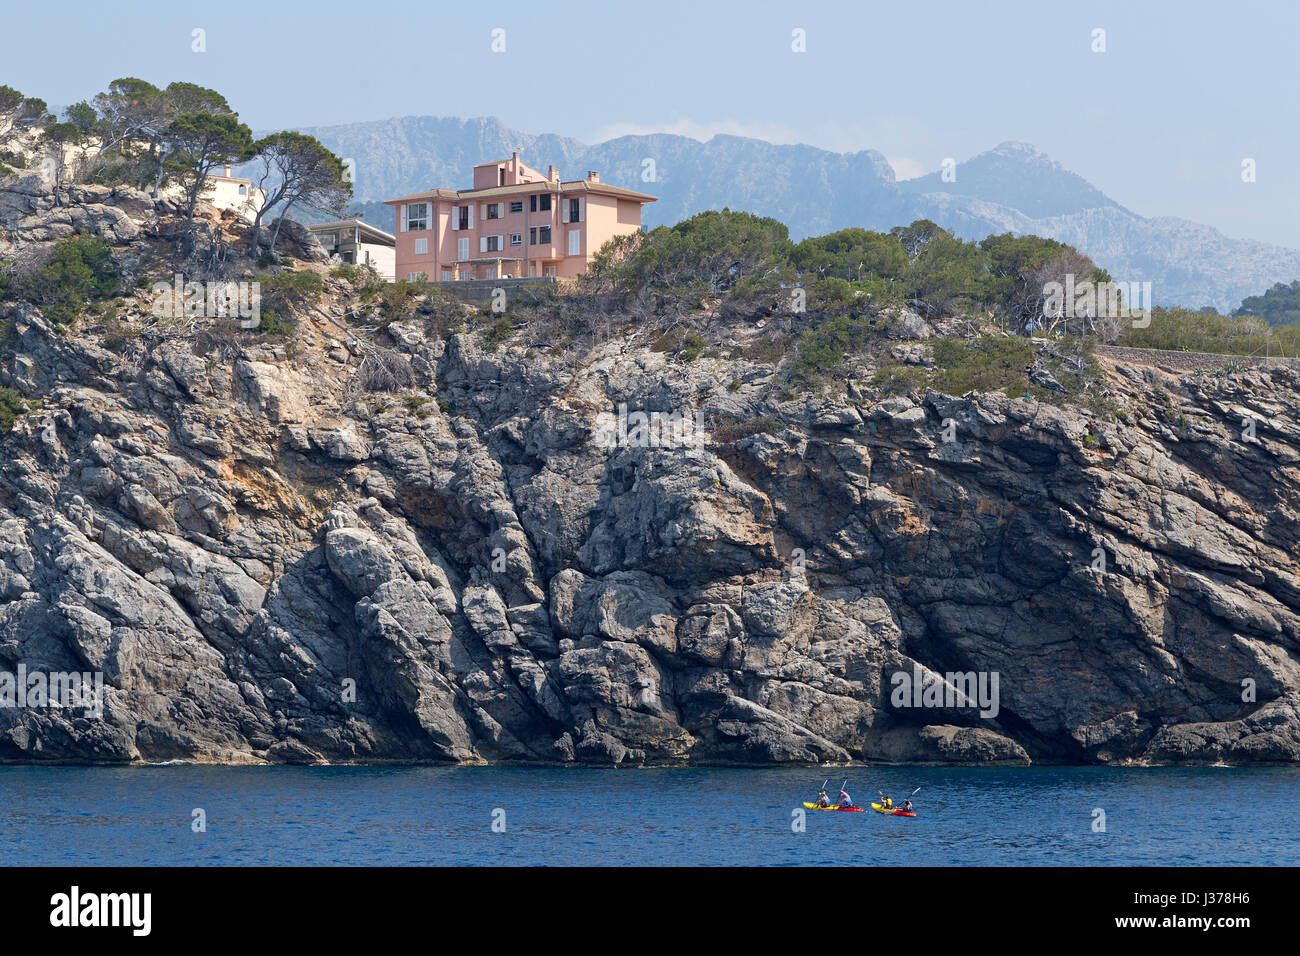 house on the cliffs in Port de Sóller, Mallorca, Spain - Stock Image